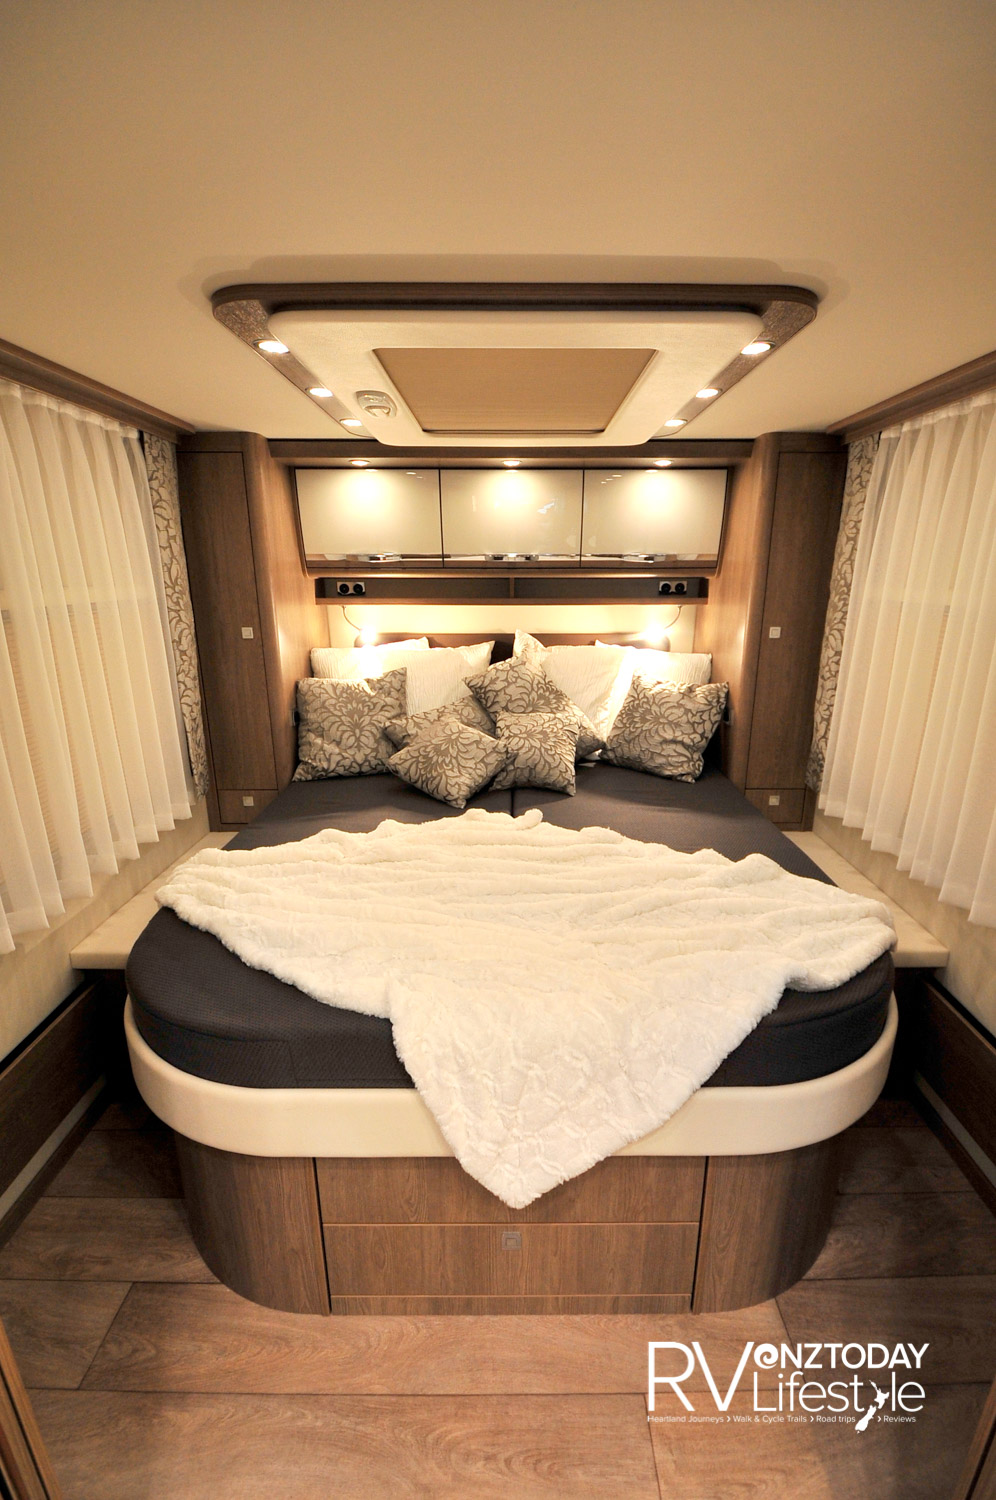 Nice bedroom, one step up into the room, bed has two drawers for storage, has the Evo Pore mattress with water gel top layer and comfort sprung base